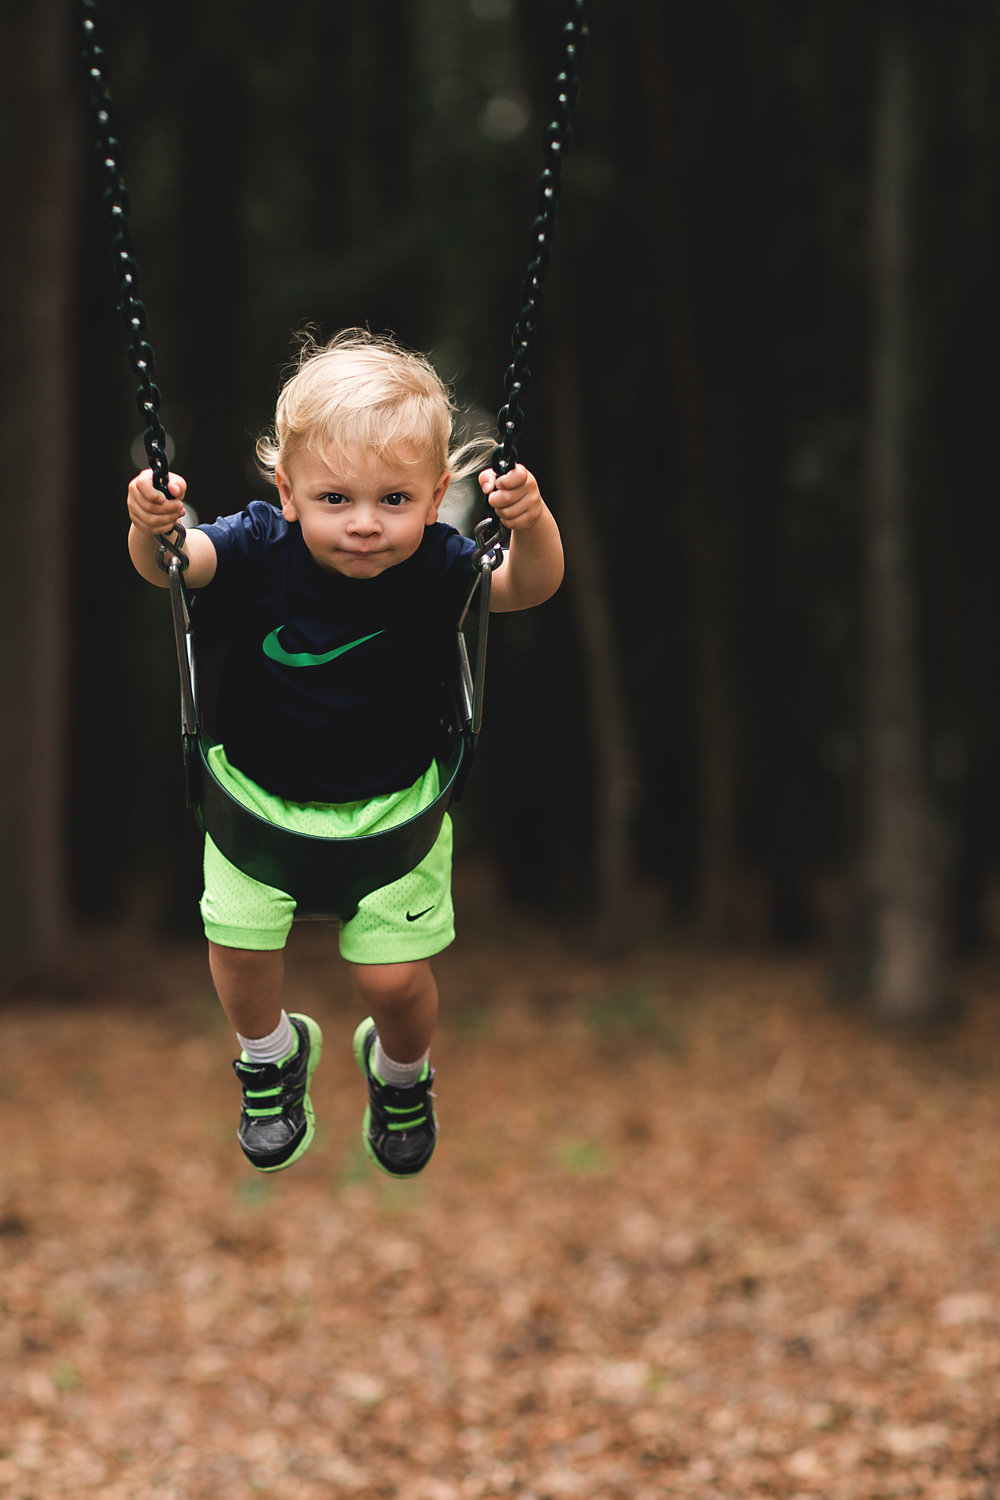 Hello-olivia-photography-Long-island-photography-children-session-family-lifestyle-matthew-swing.jpg